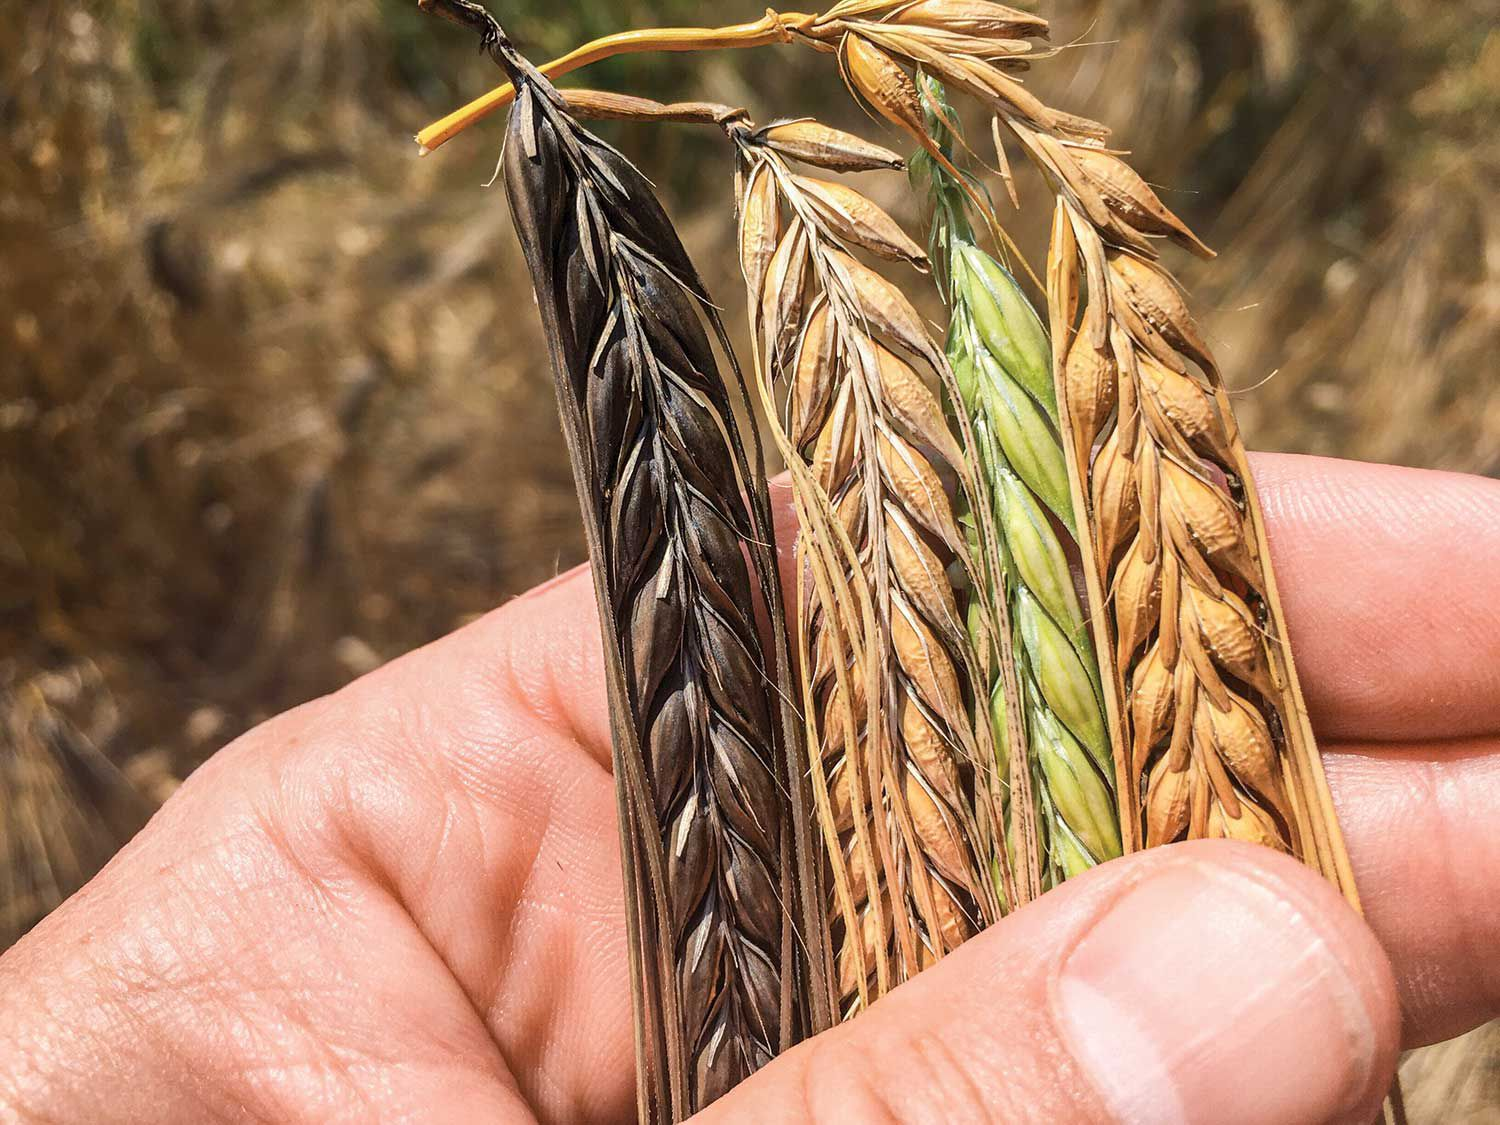 Skagit Valley farmers are growing barley varieties new and old for the distillery.